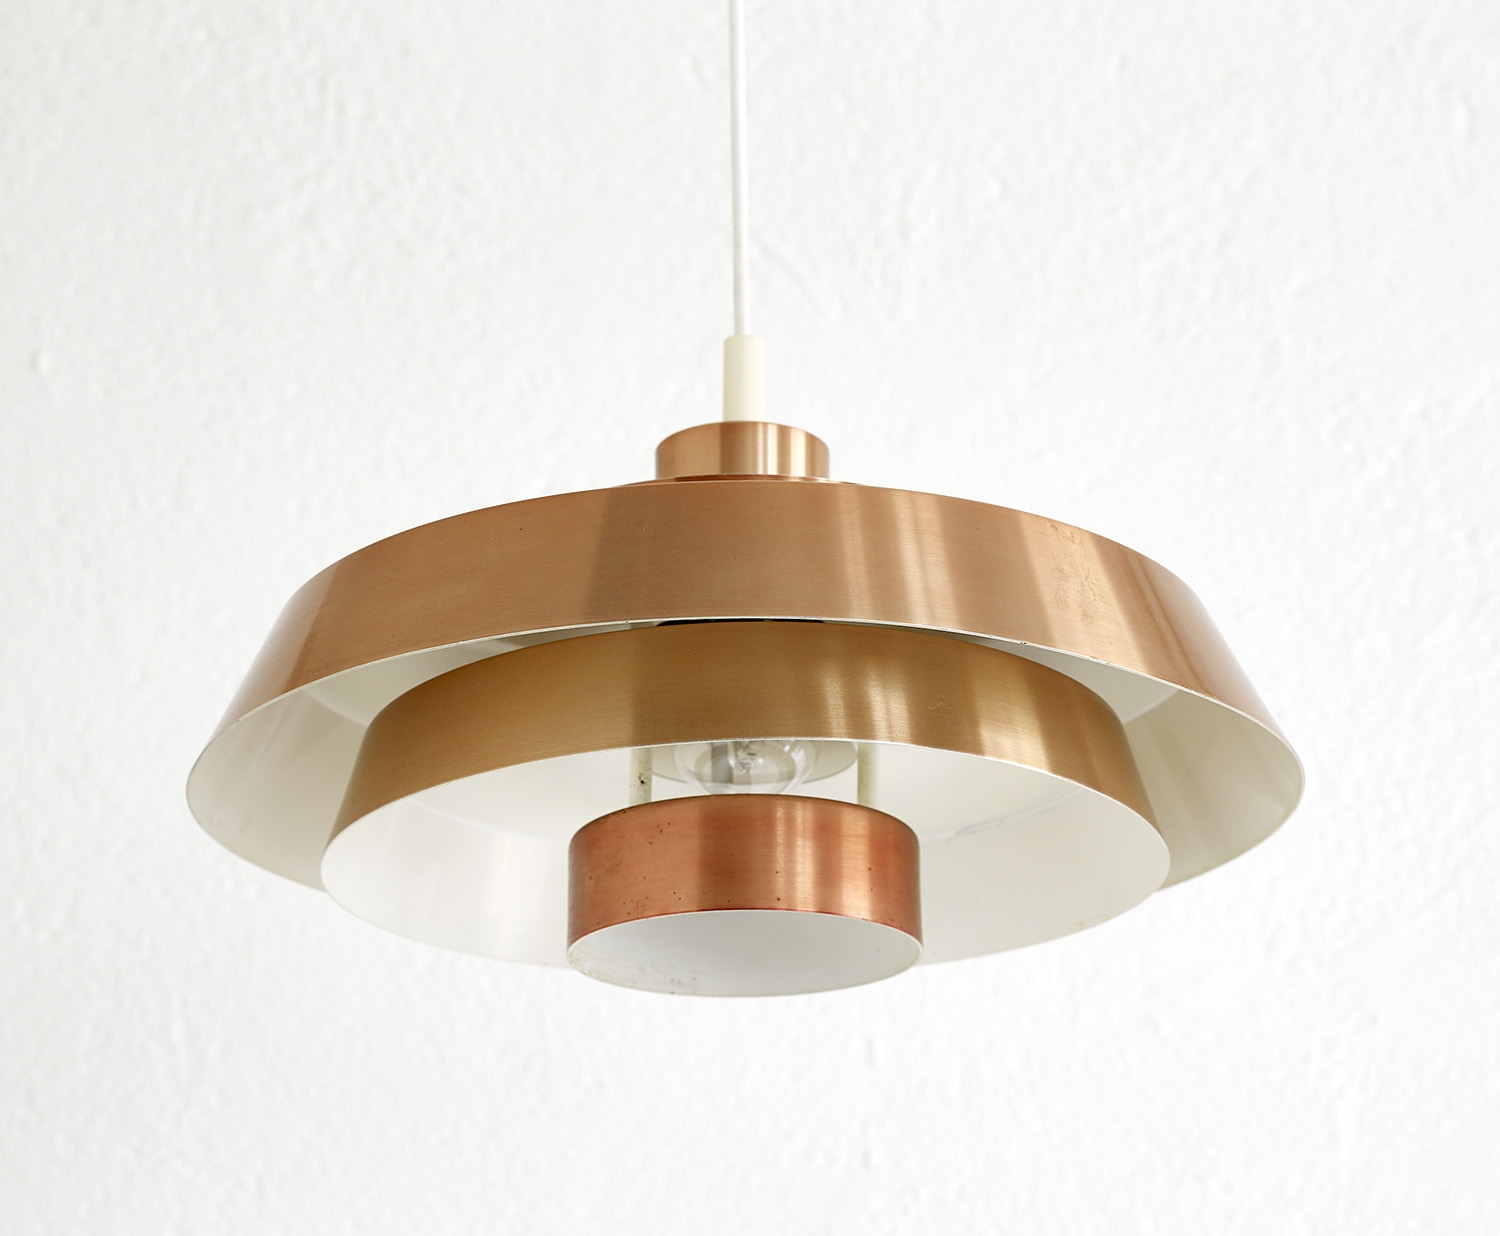 nova-copper-suspension-by-jo-hammerborg-image-03